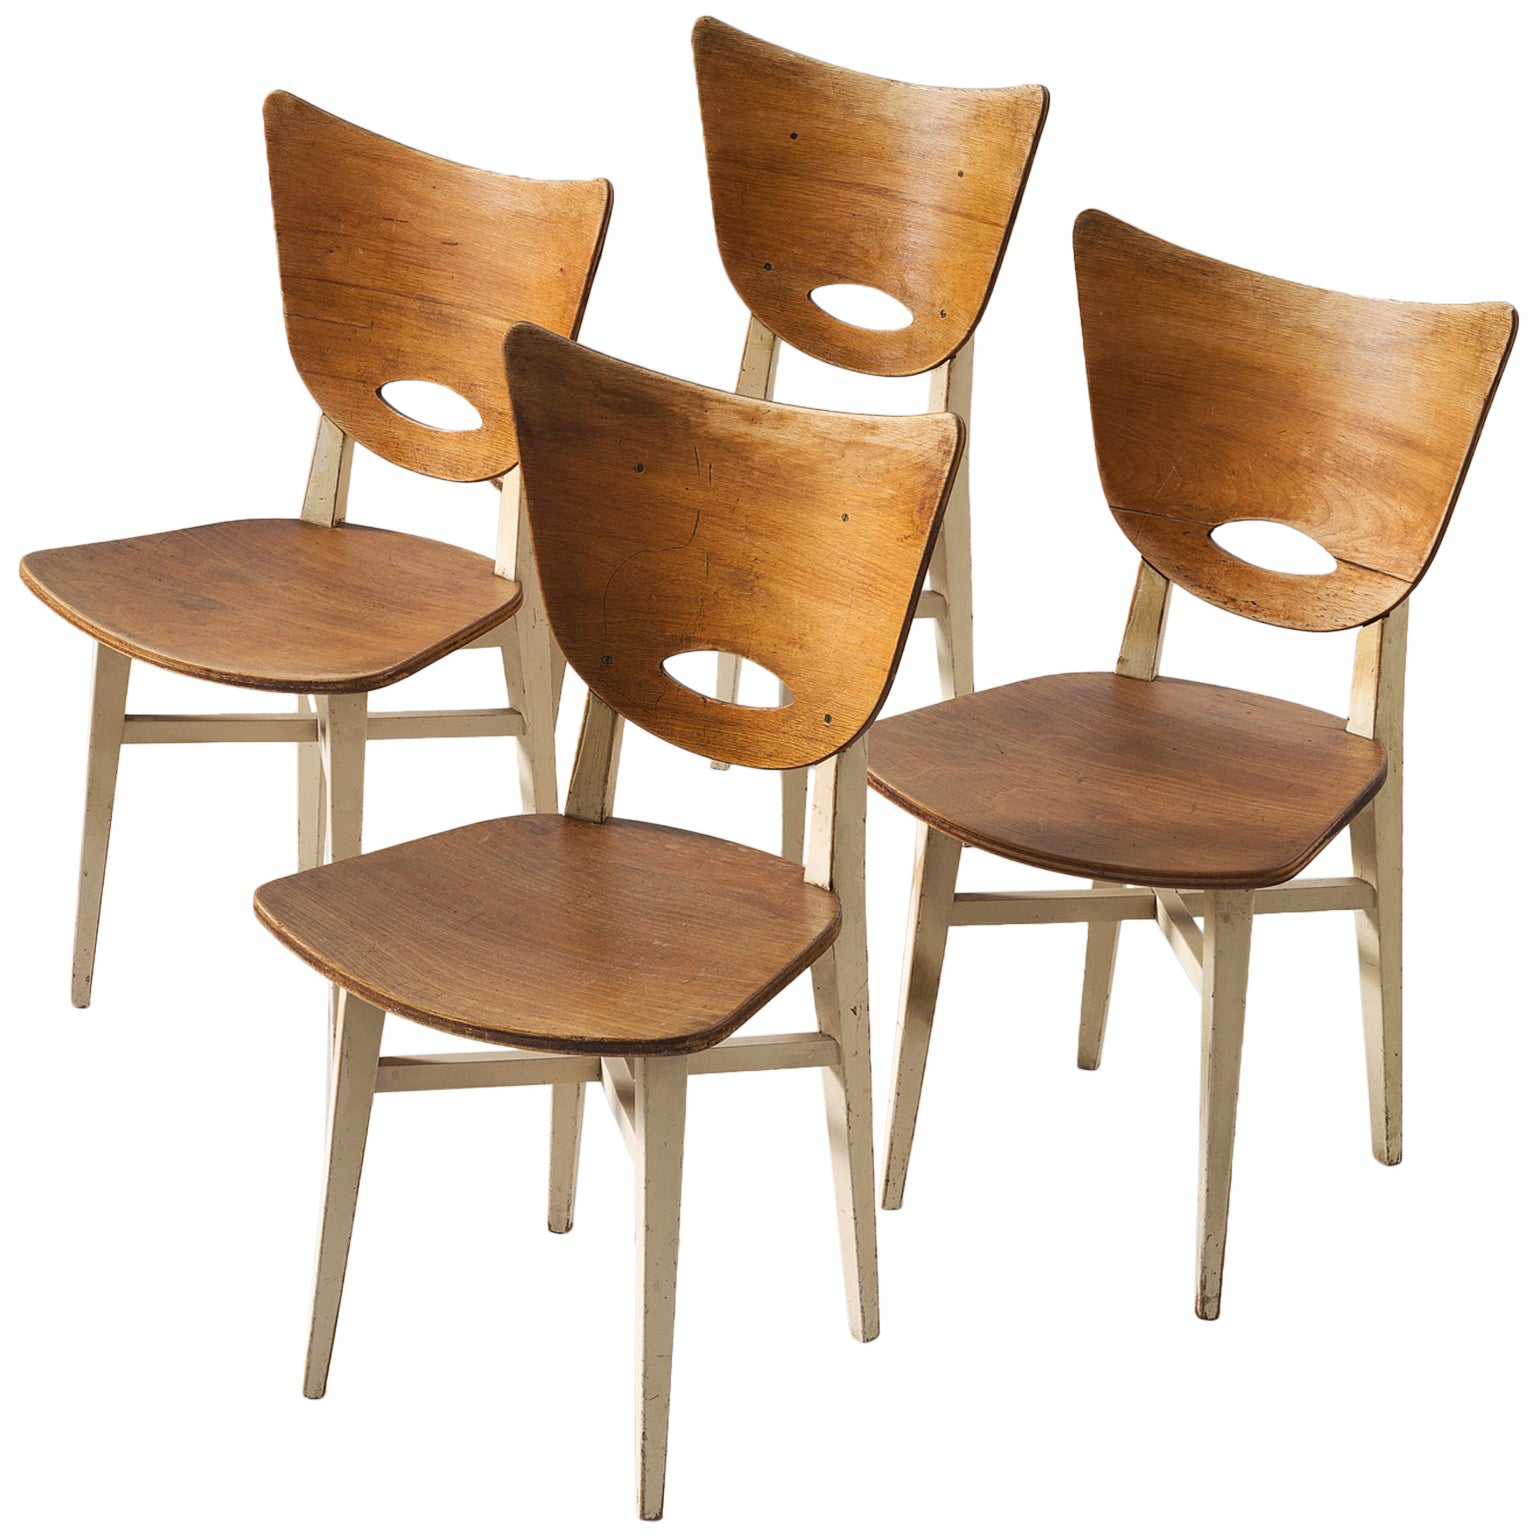 Set of Four Dining Chairs in Beech